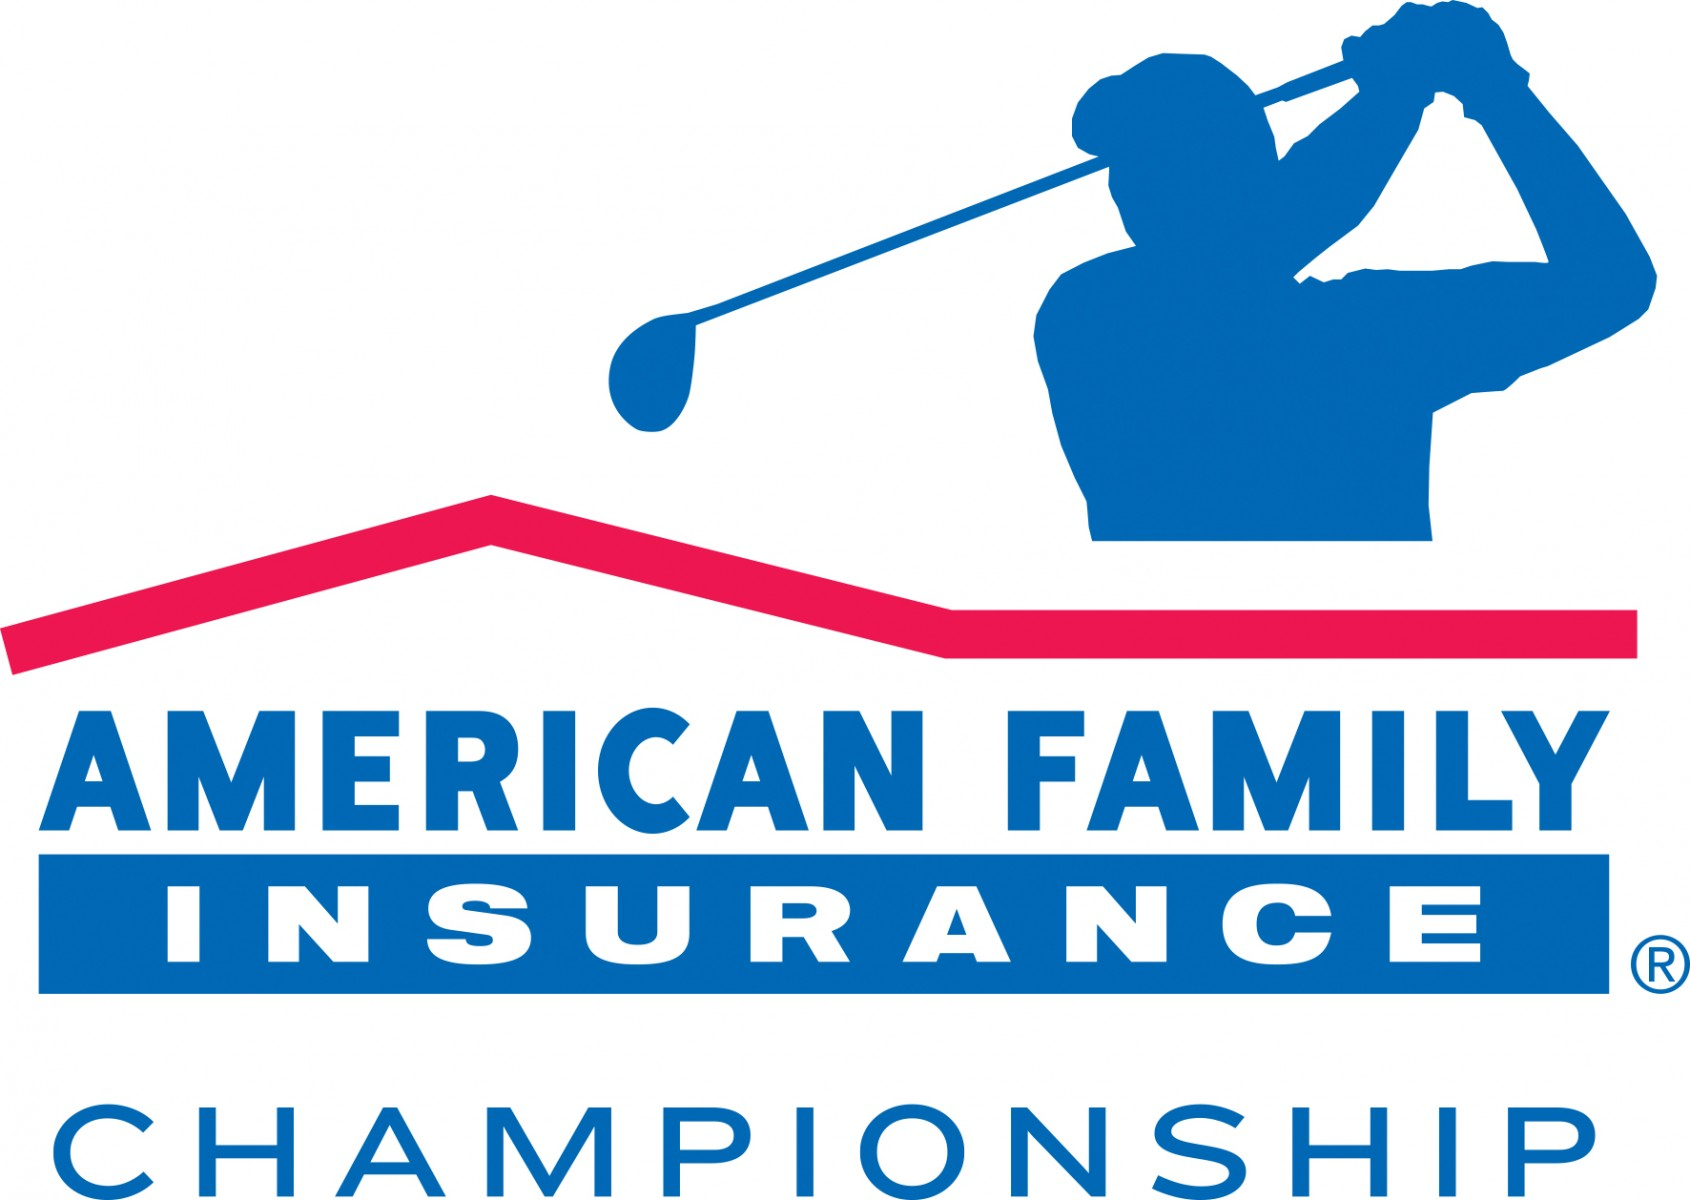 American Family Insurance Quote Amfam Insurance Quote  44Billionlater